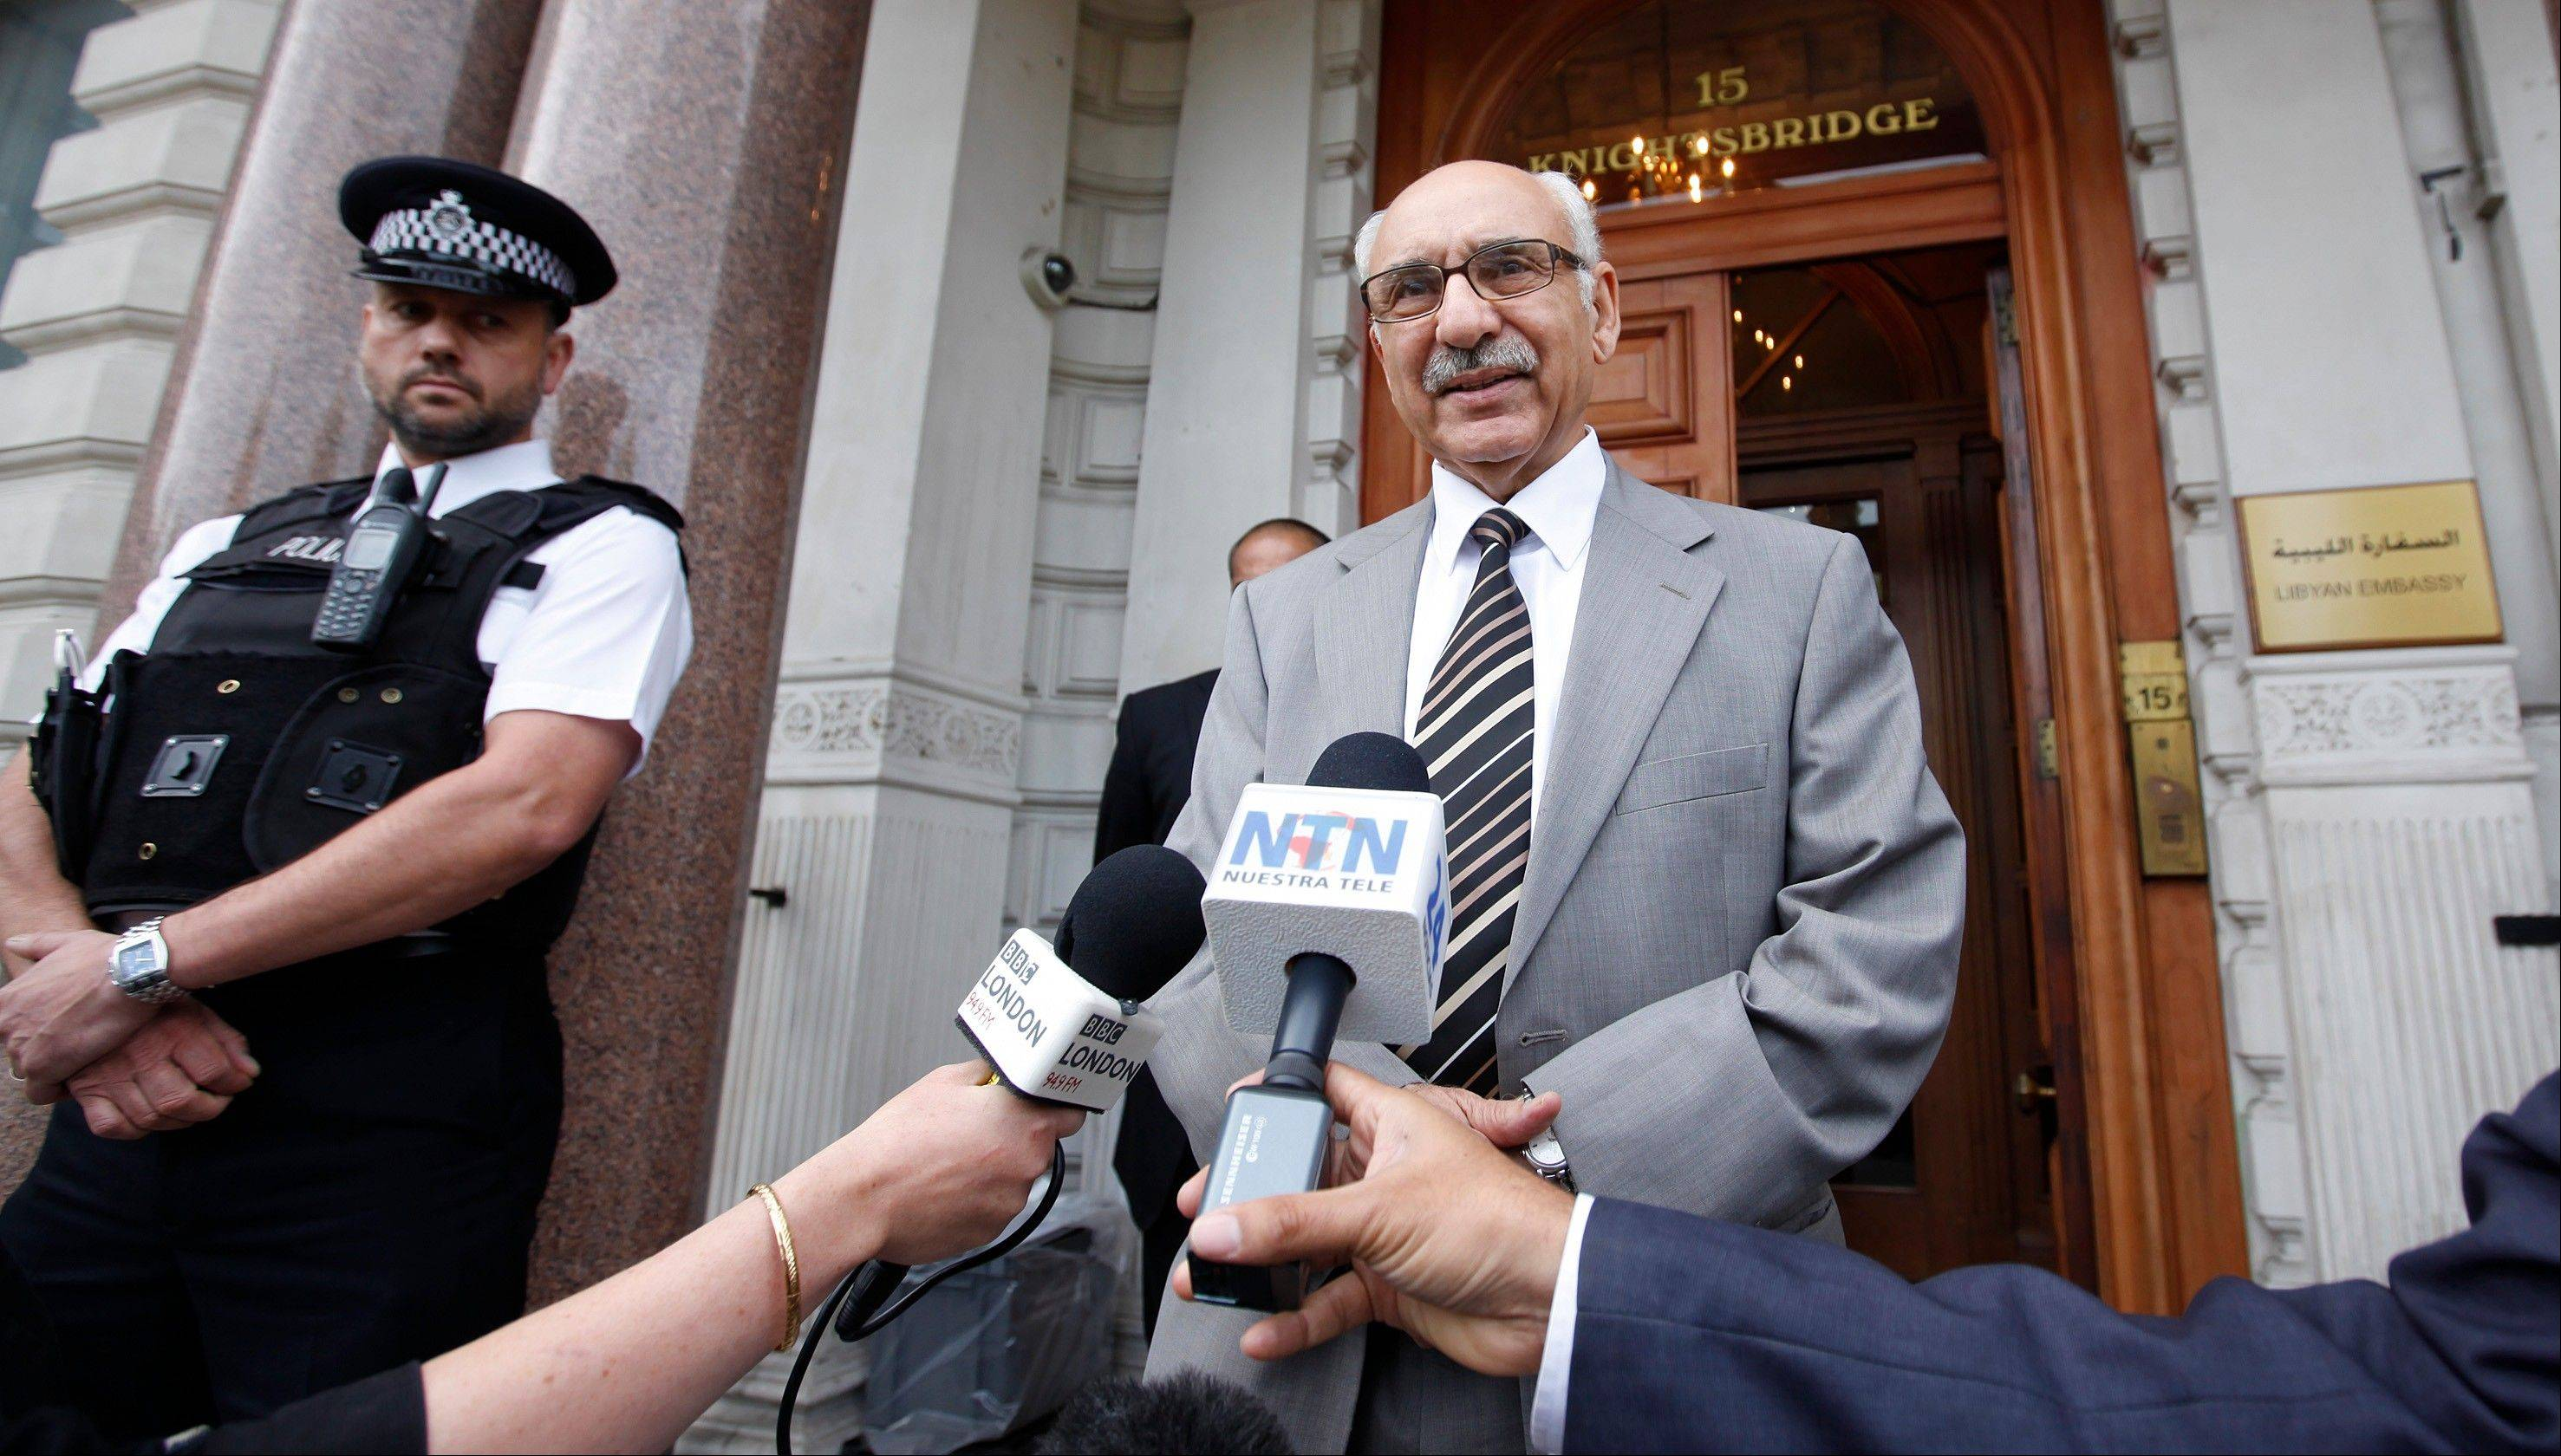 The new Libyan Charge d'affairs to the United Kingdom Mahmud Nacua speaks to the media outside the embassy in London, Monday, Aug., 22, 2011. Nacua called for the end of NATO military action against Libya as the NTC begins to take charge, and he believes that Col. Gadaffi is still at large in Libya.